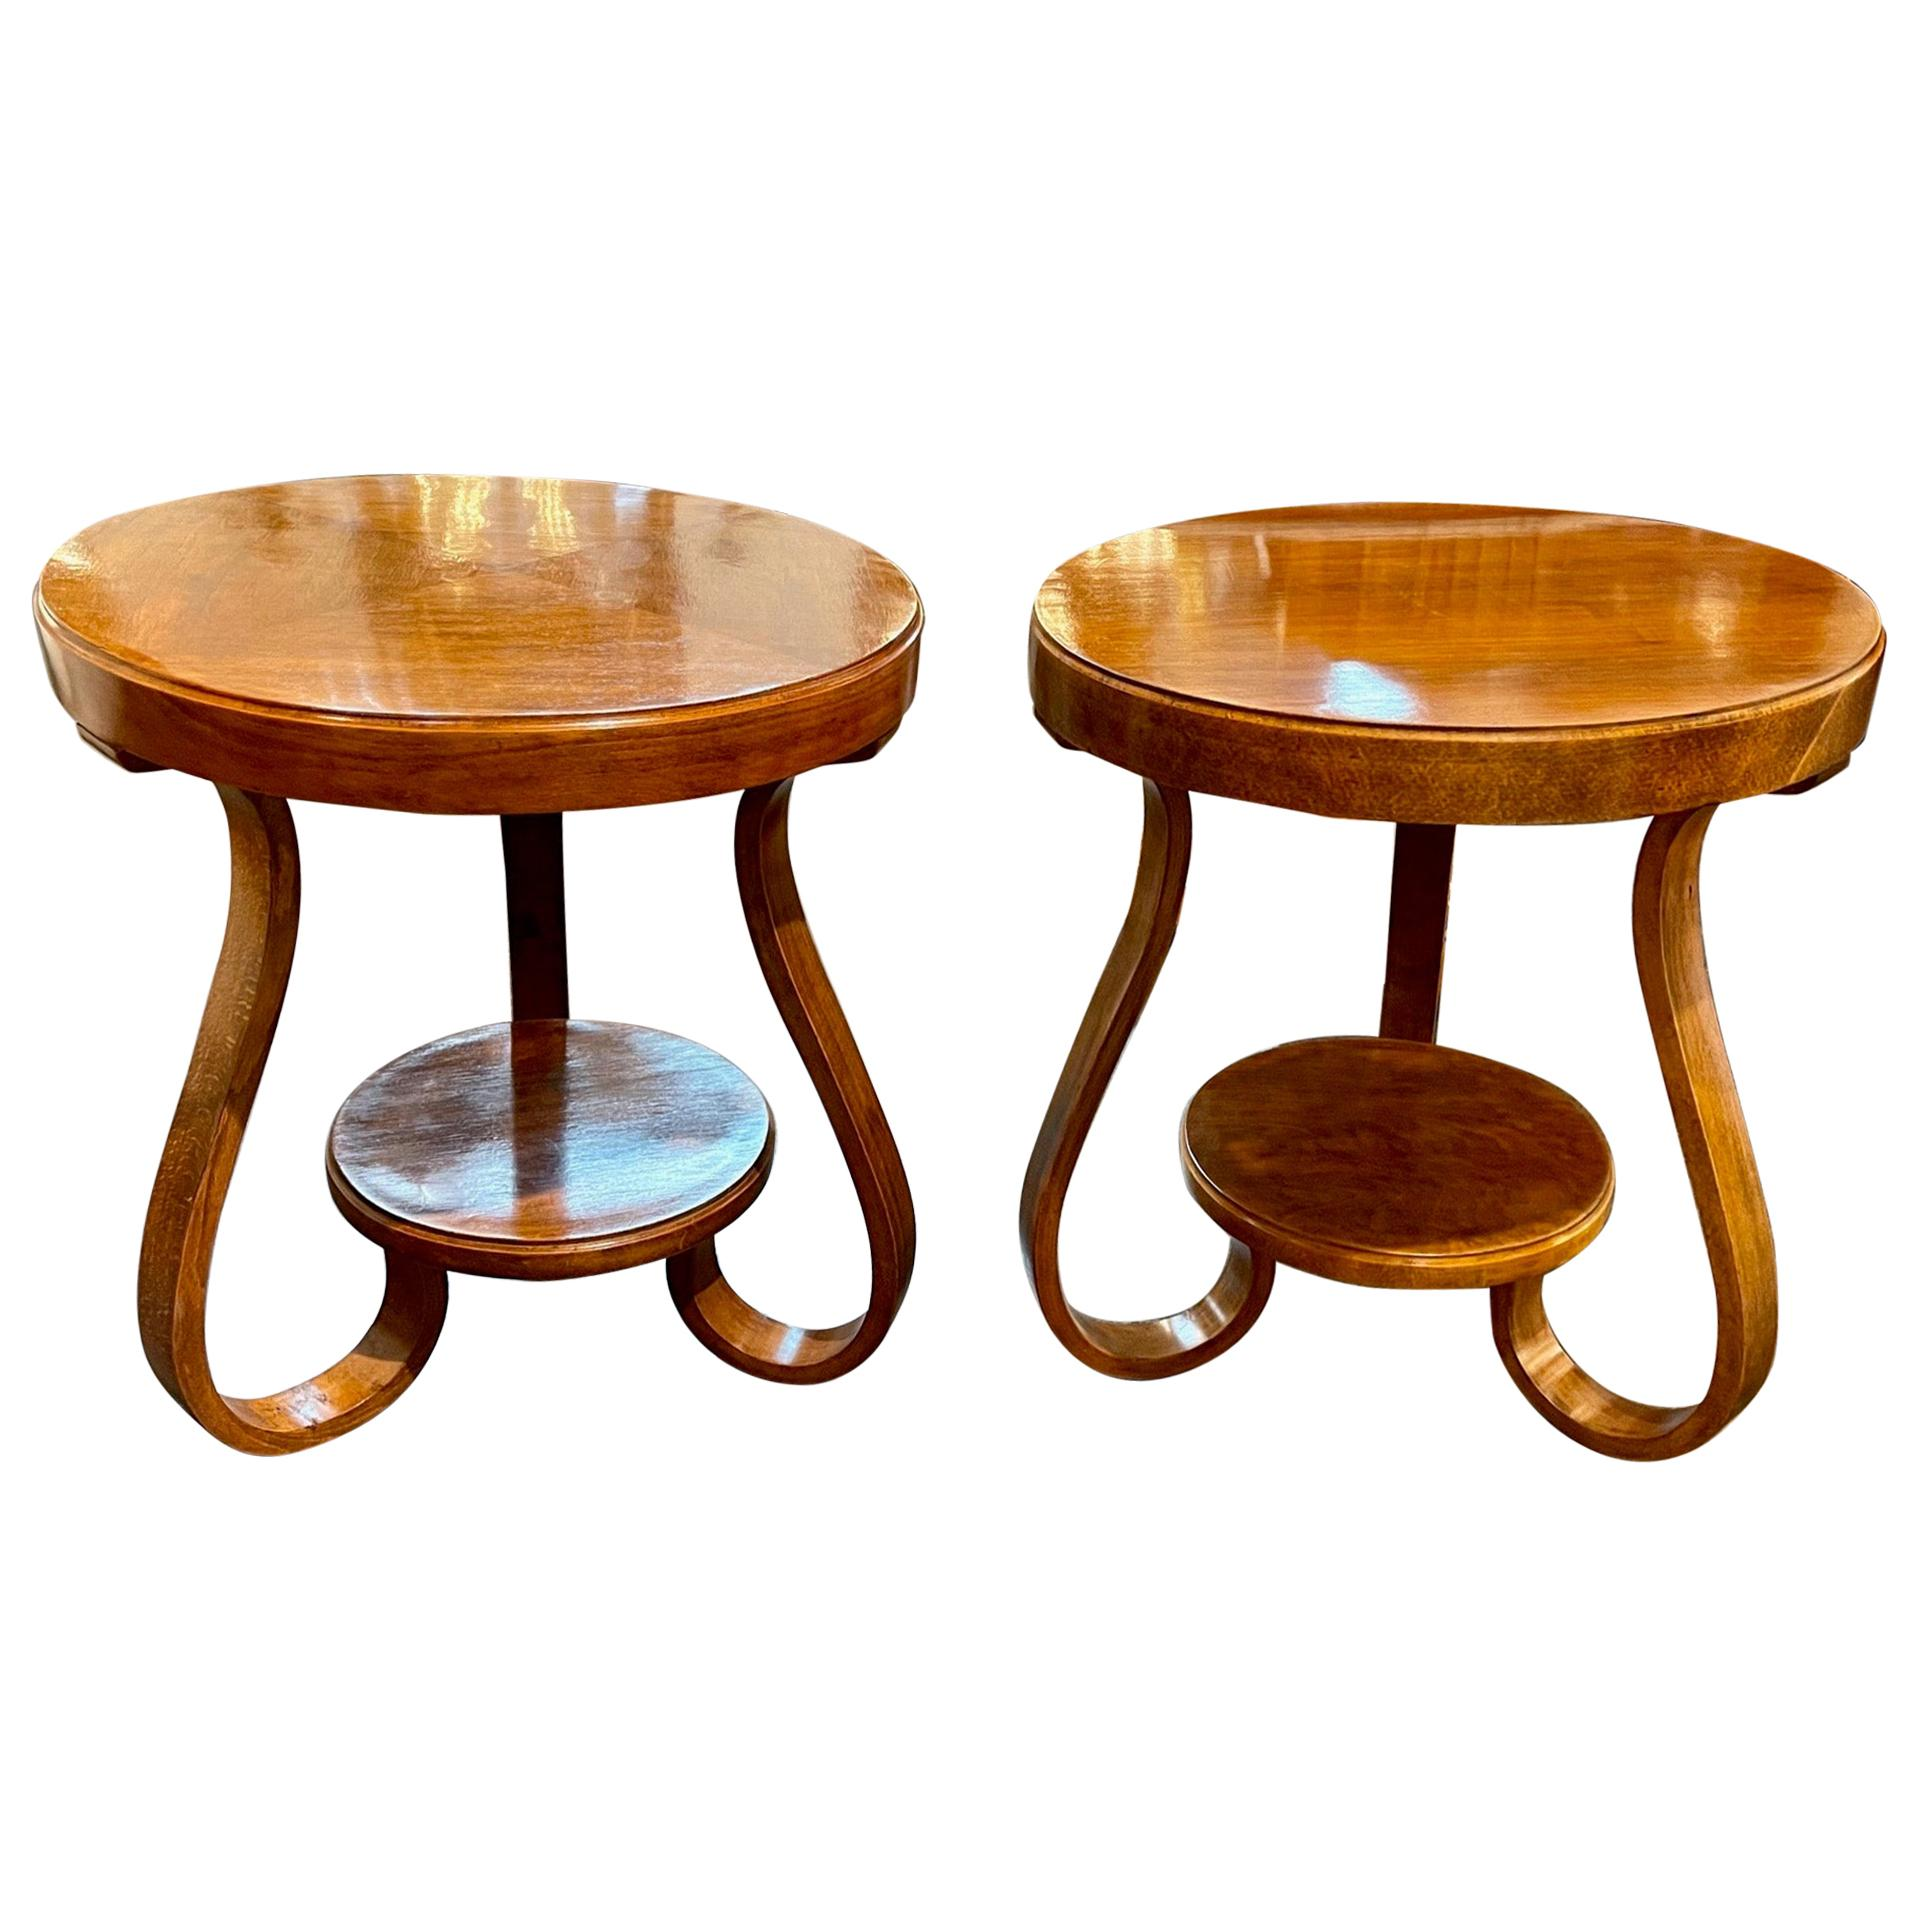 Vintage Art Deco Walnut Side Tables